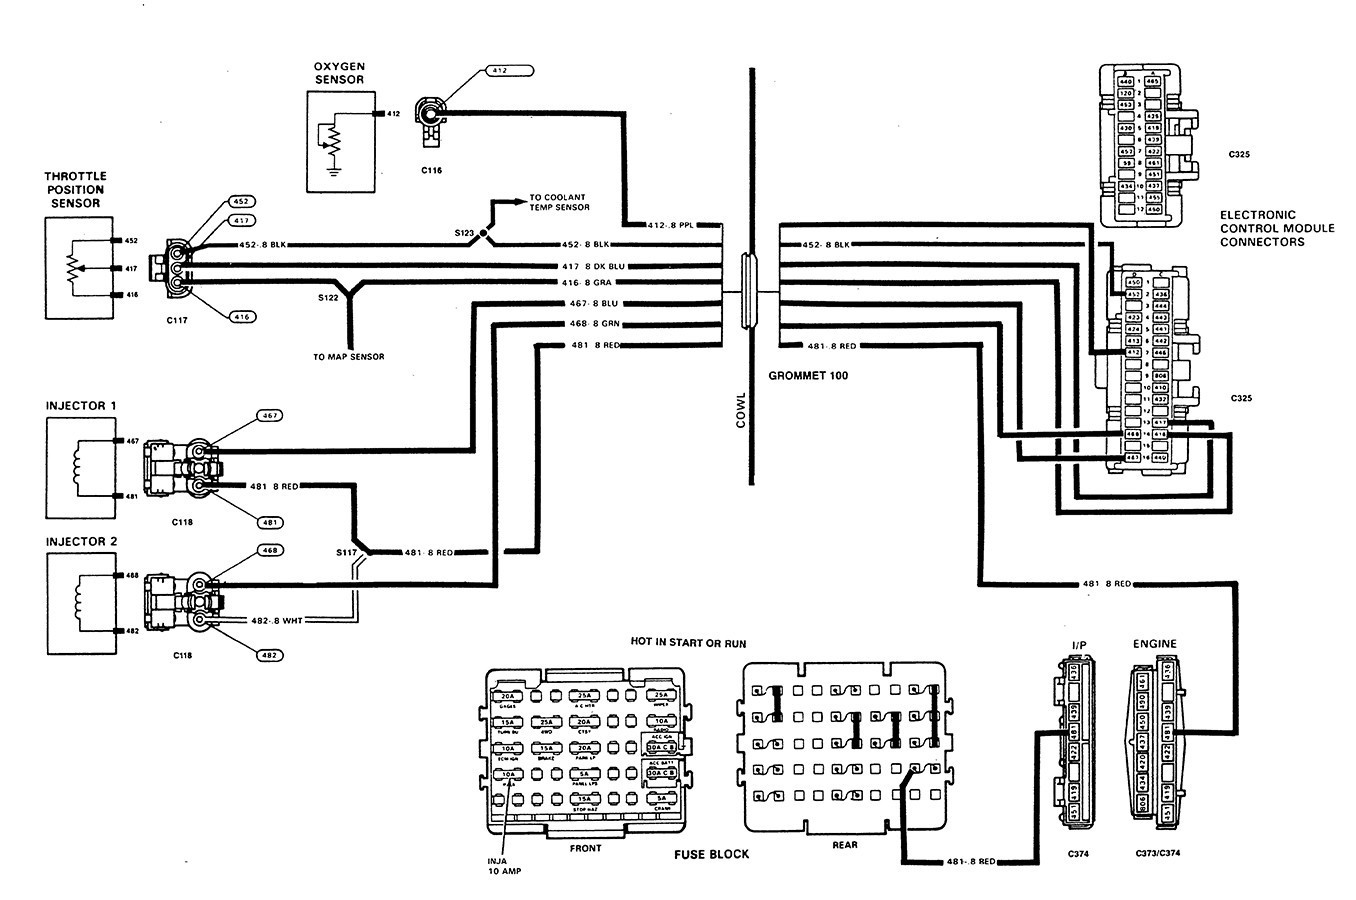 1999 Suburban Radio Wiring Diagram Will Be A Thing 96 Tahoe O2 Sensor Services 94 Trailer Brakes 95 Chevrolet Brake